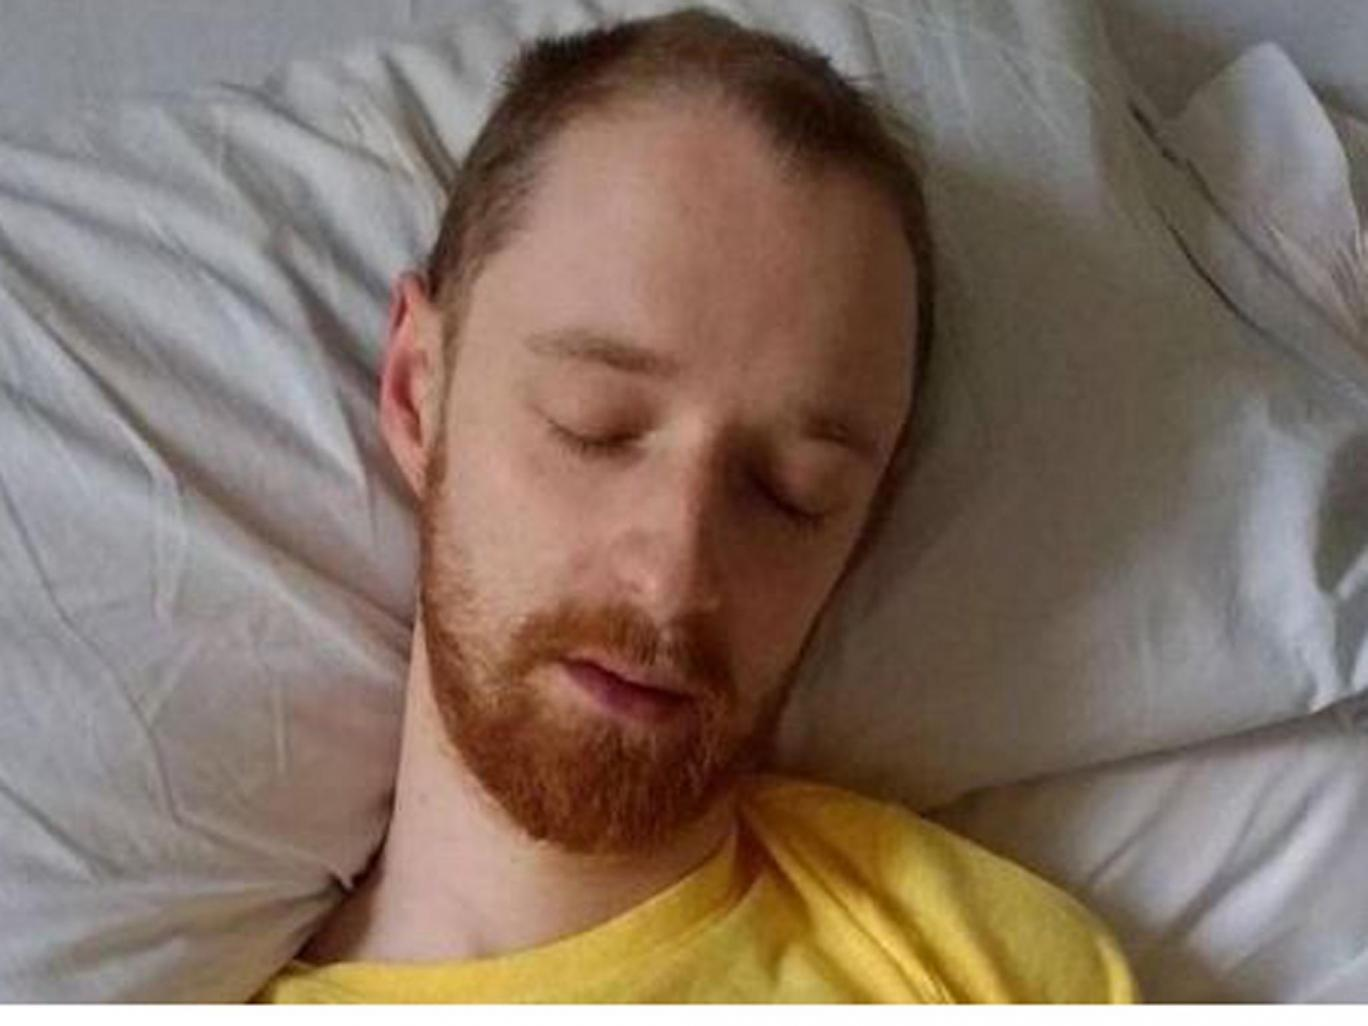 A gay man left for dead in a suspected hate